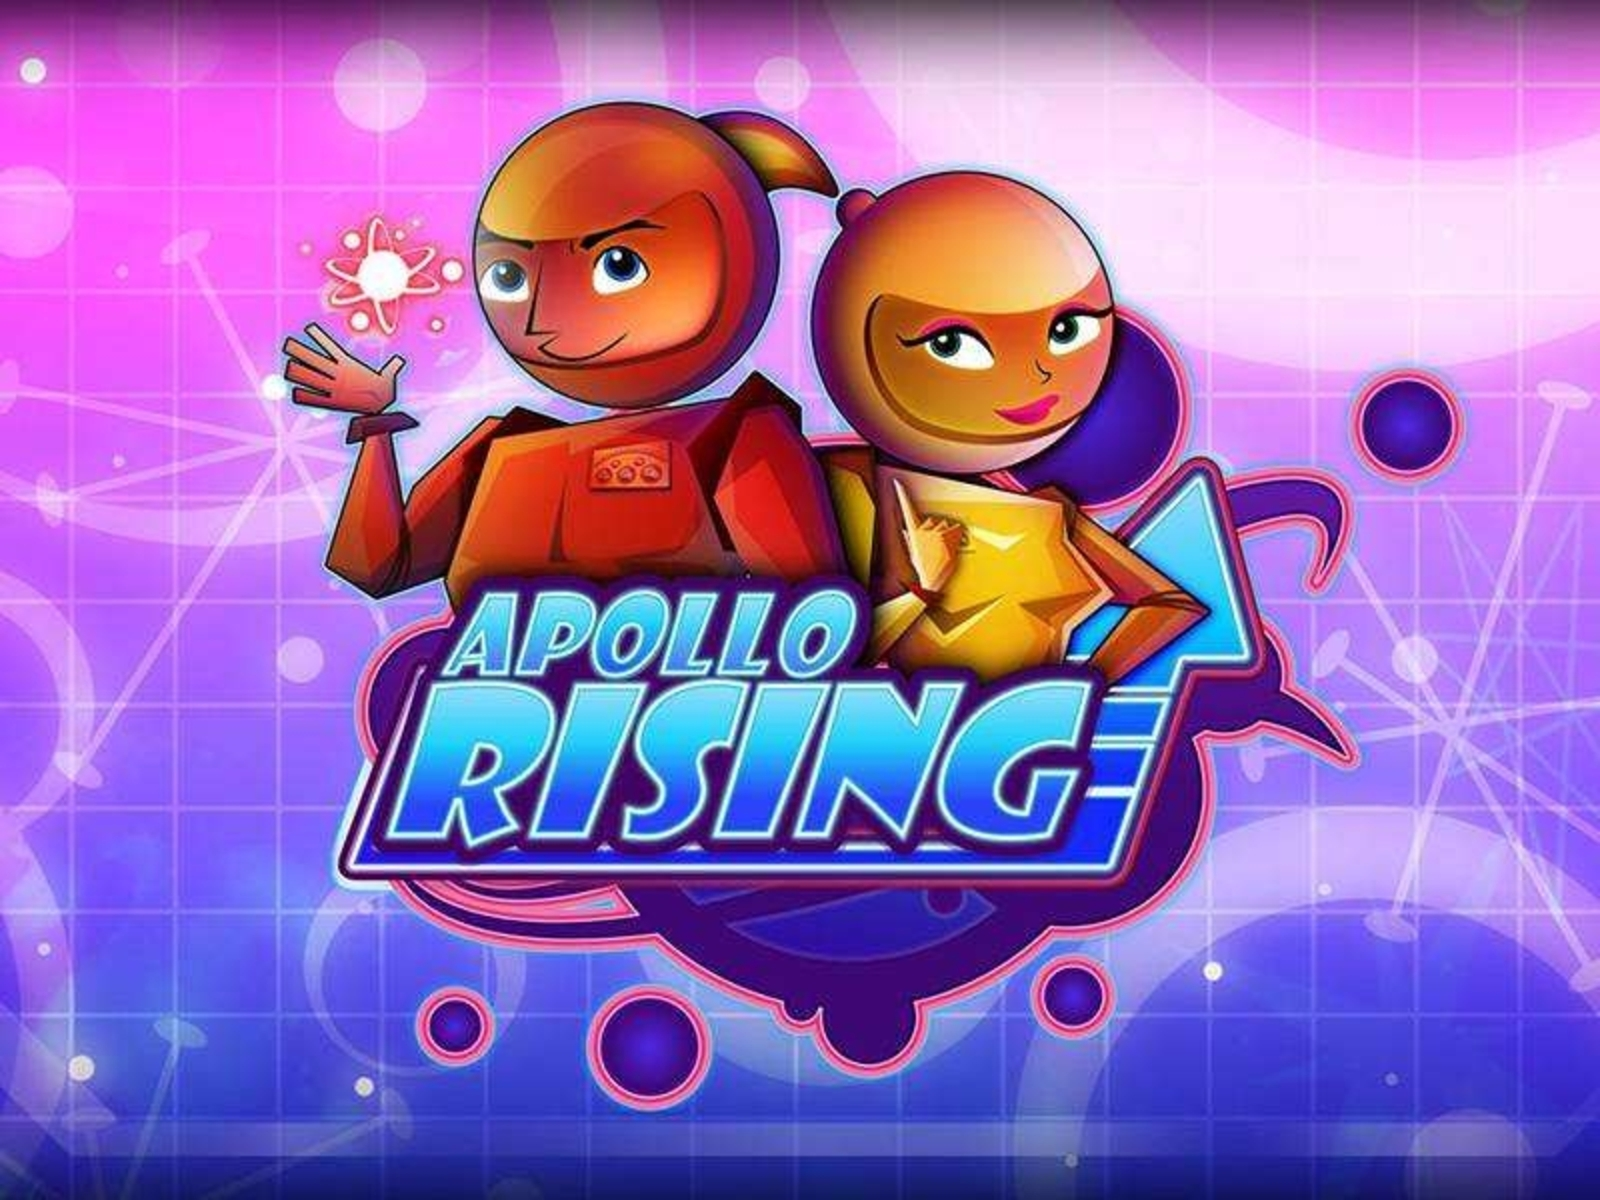 Apollo Rising Online Slot Demo Game by IGT